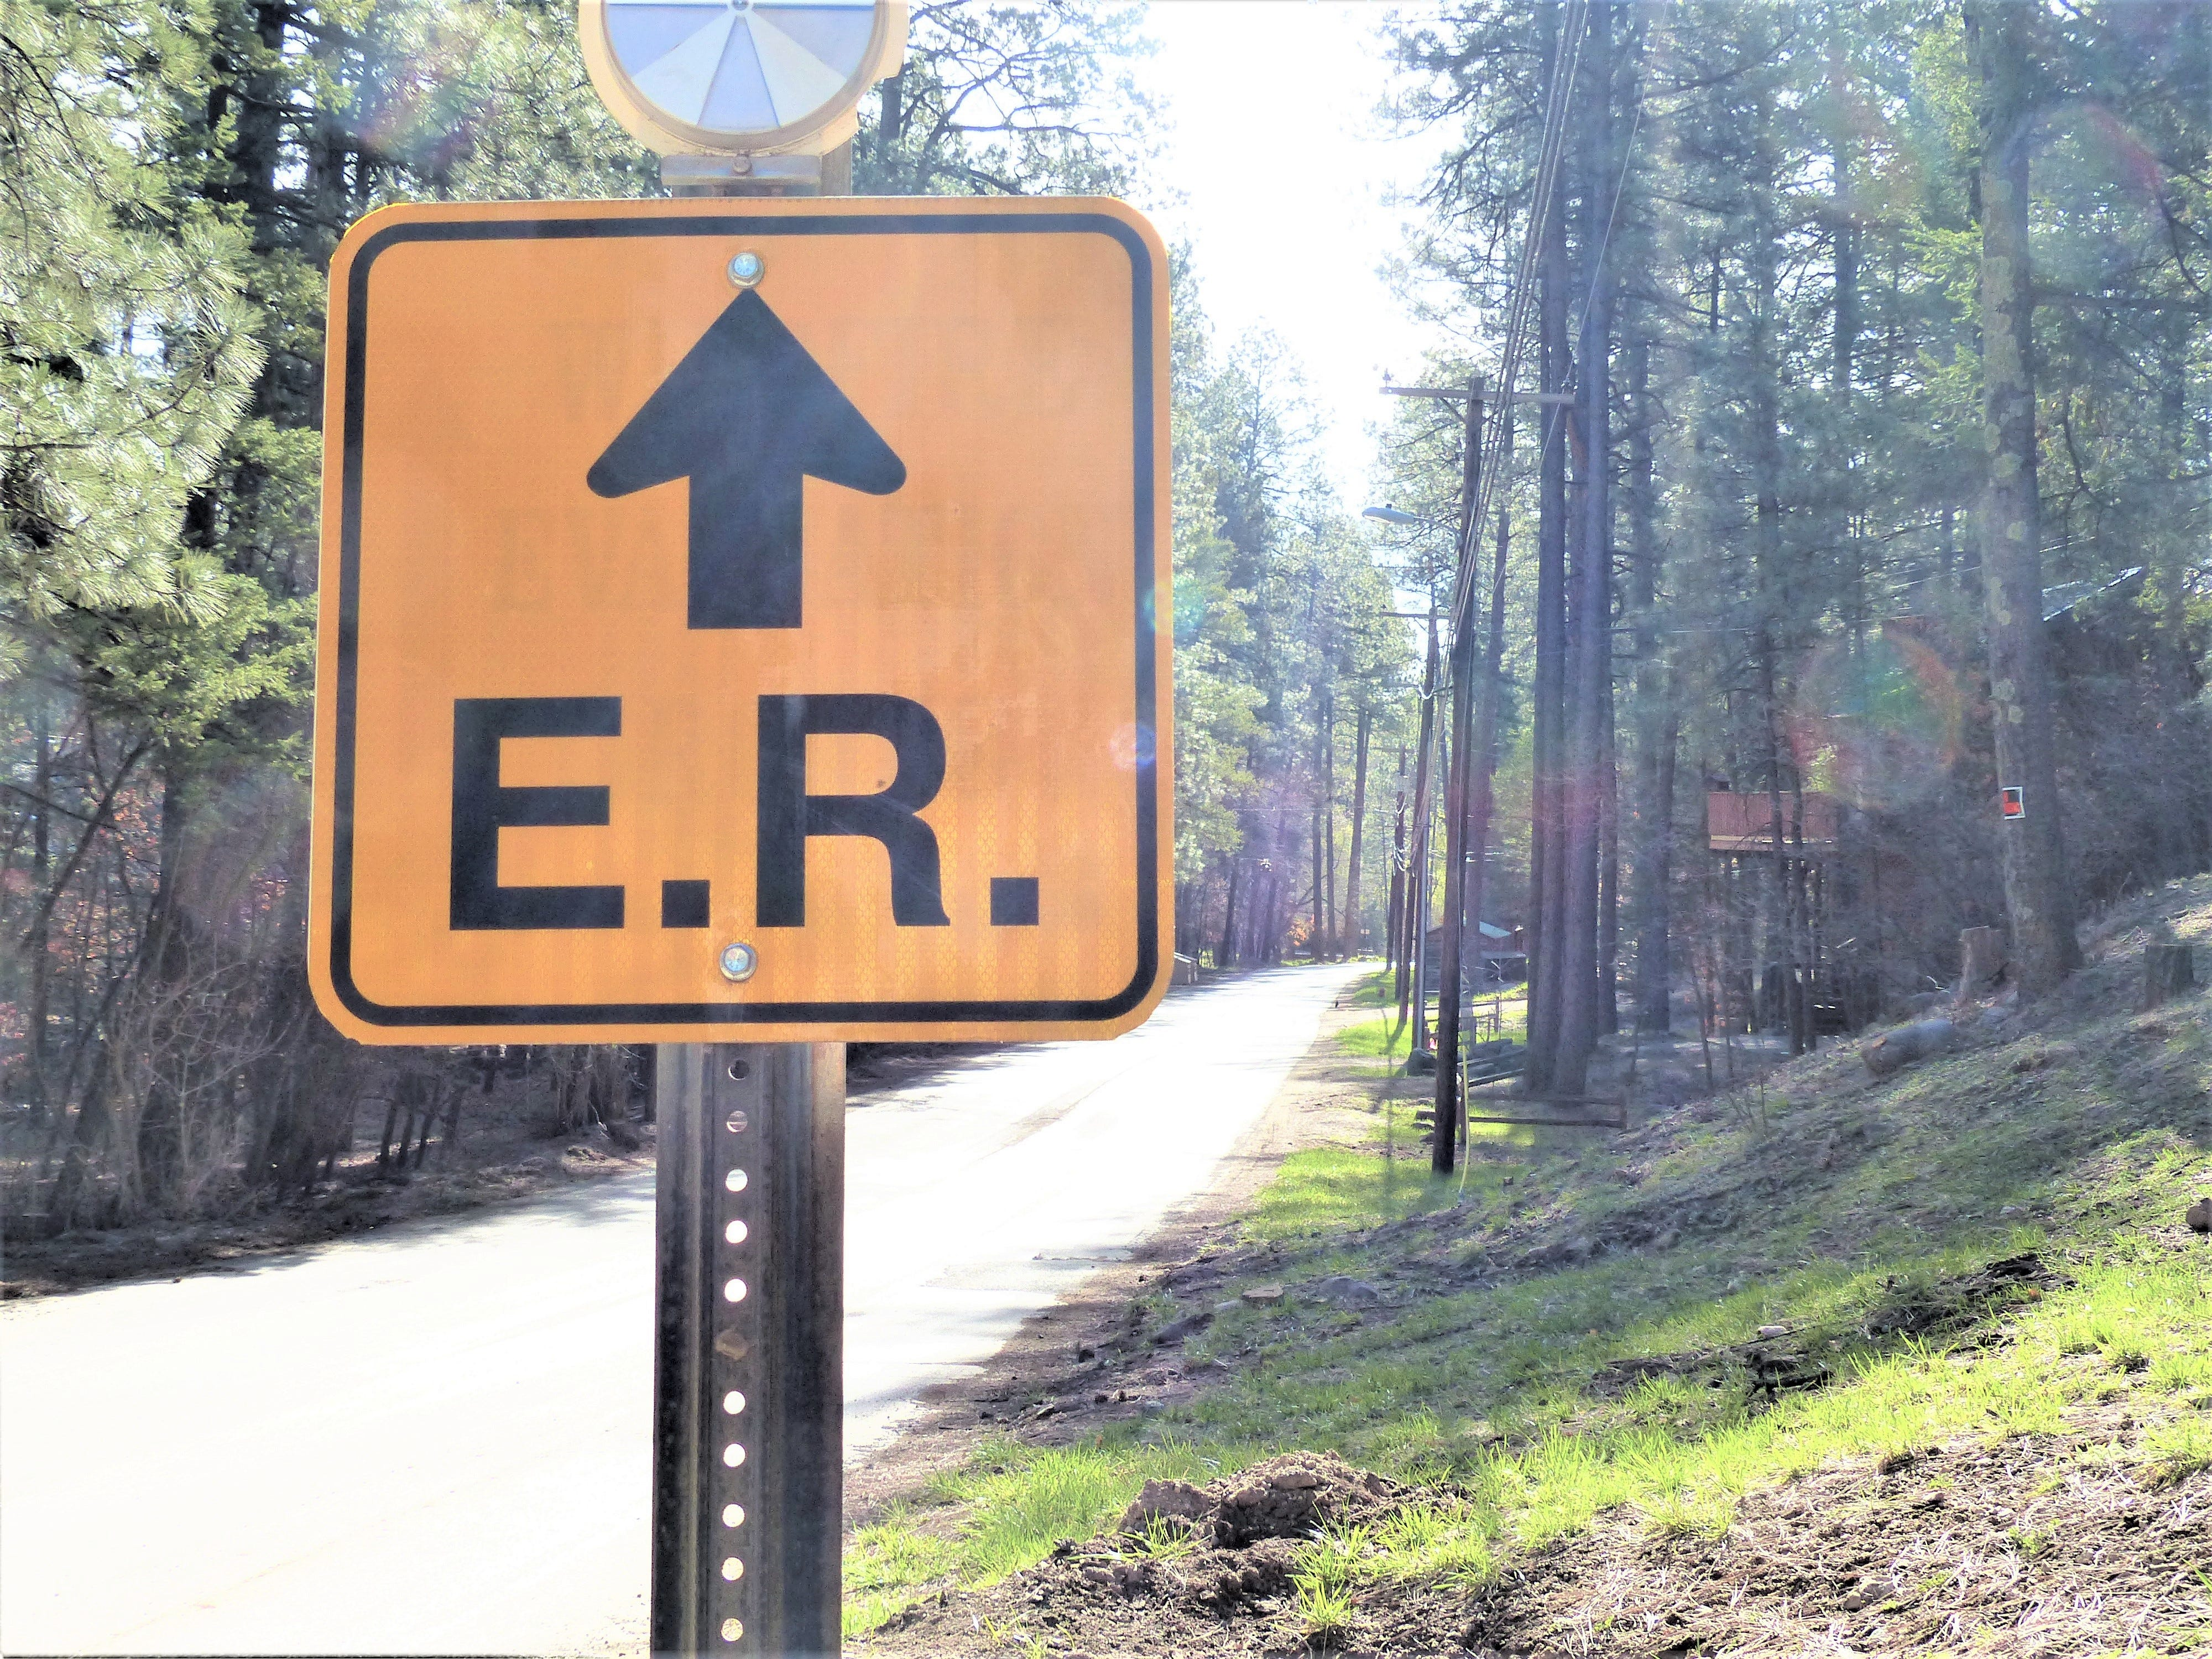 Signs clearly mark evacuation routes in Upper Canyon and several other areas of the village, but officials urge residents to map out alternate routes in case a road is blocked.